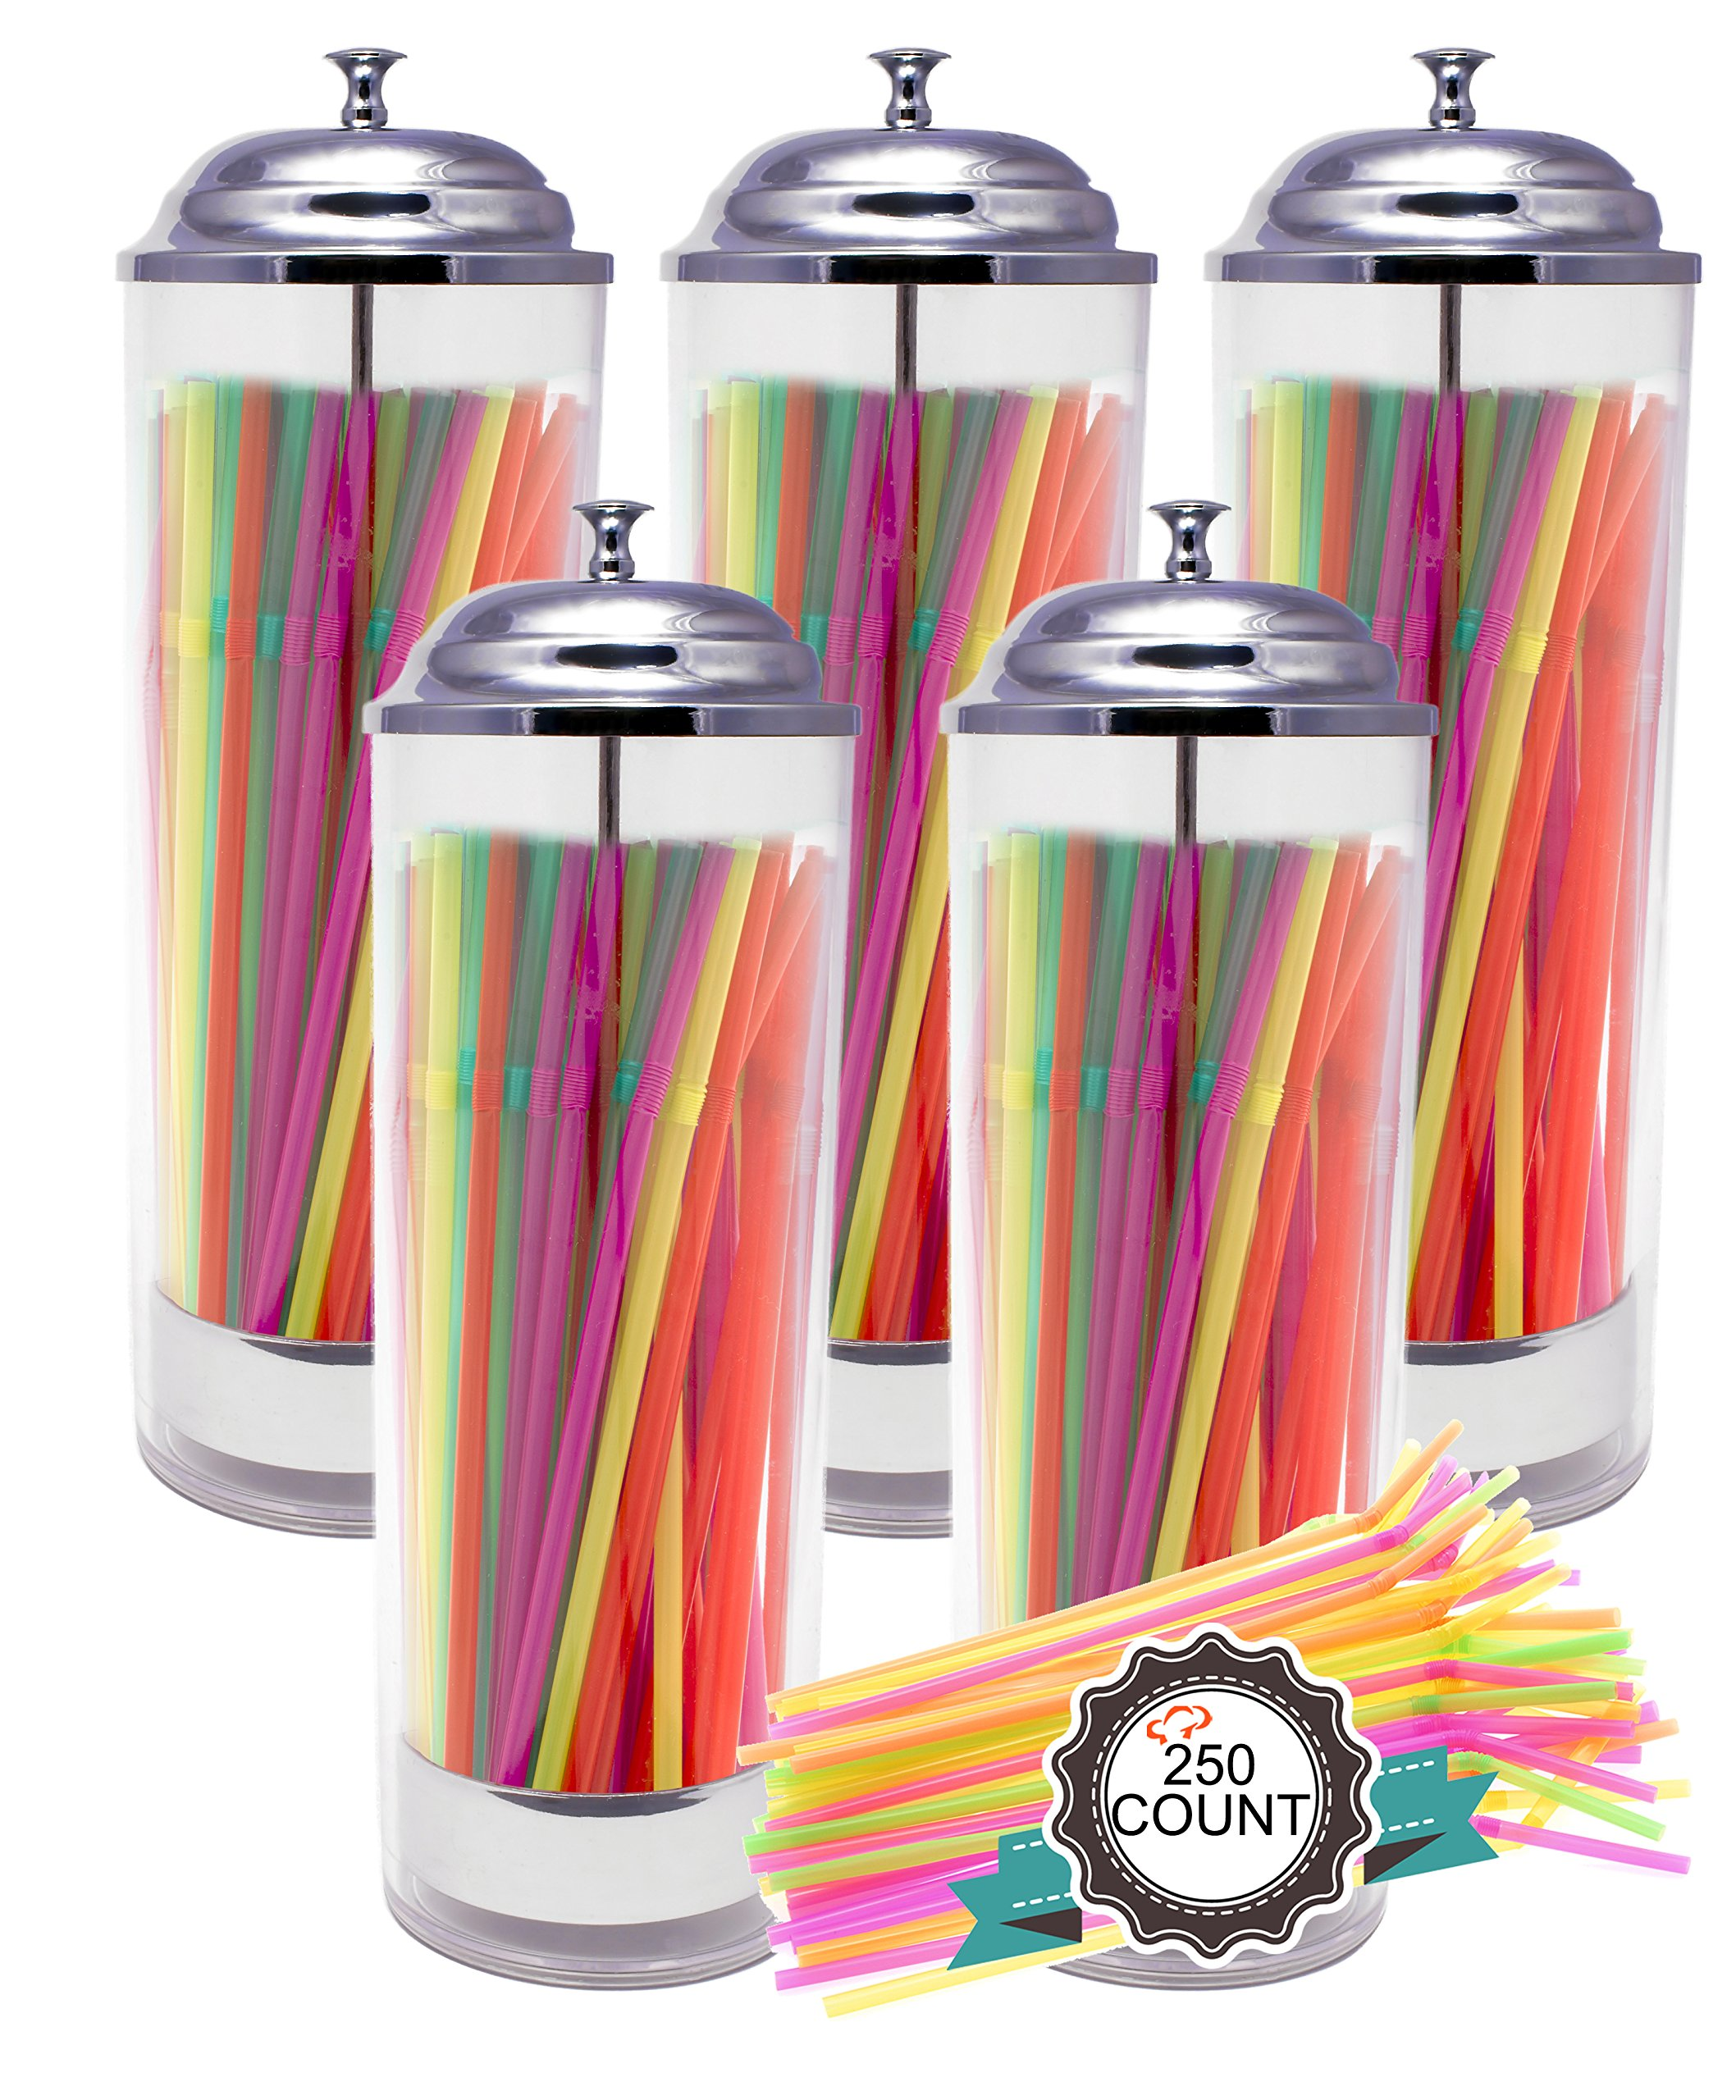 Tiger Chef 5-Pack Plastic Cylinder Straw Holder with 50 Neon Straws, 3.5 x 10.6-Inch, Clear Plastic Pull-up Dispenser with Stainless Steel Lid and Tray by Tiger Chef